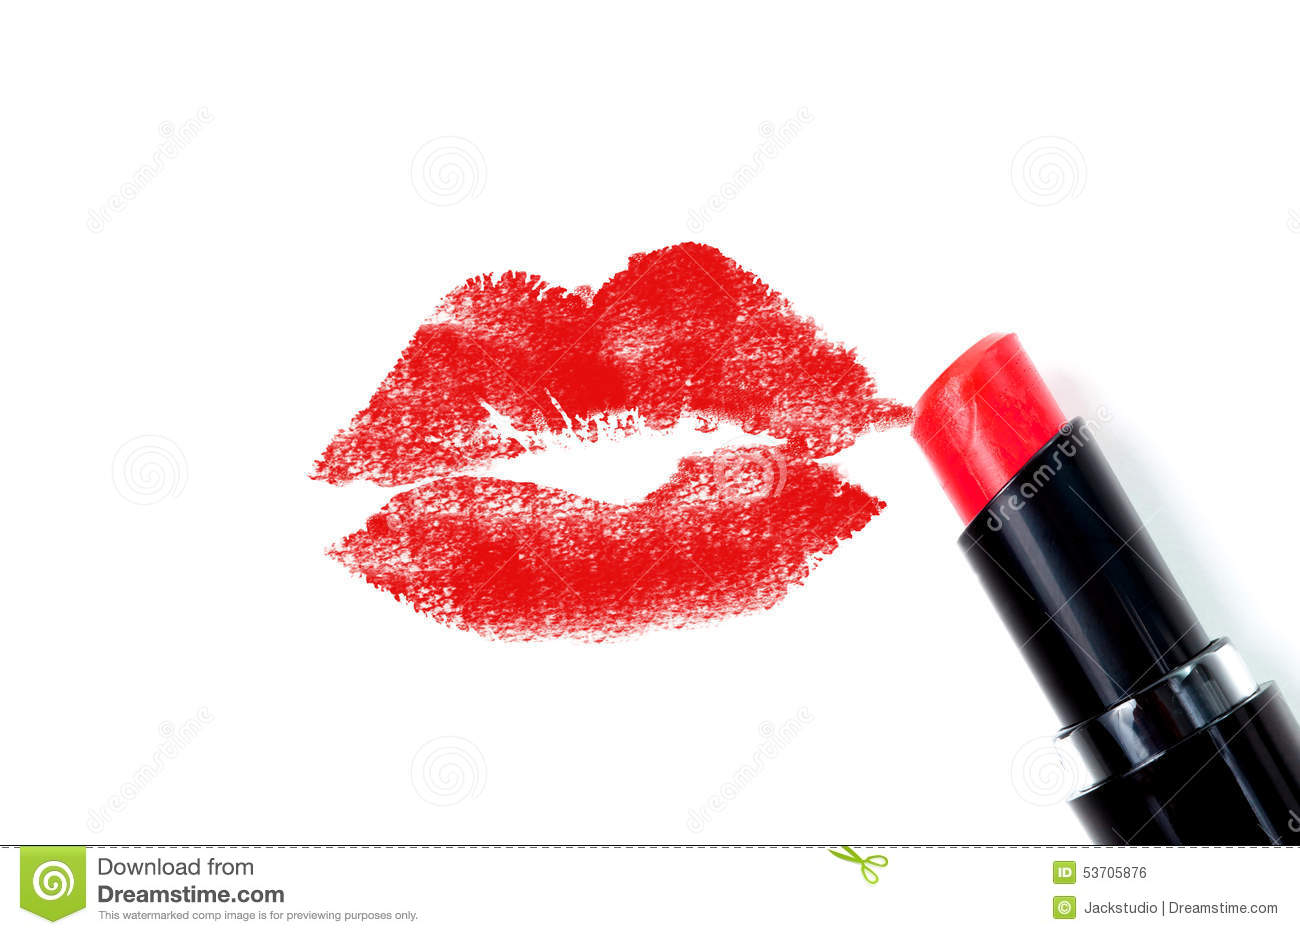 Red lipstick kiss stock photo. Image of cosmetics, beauty ...